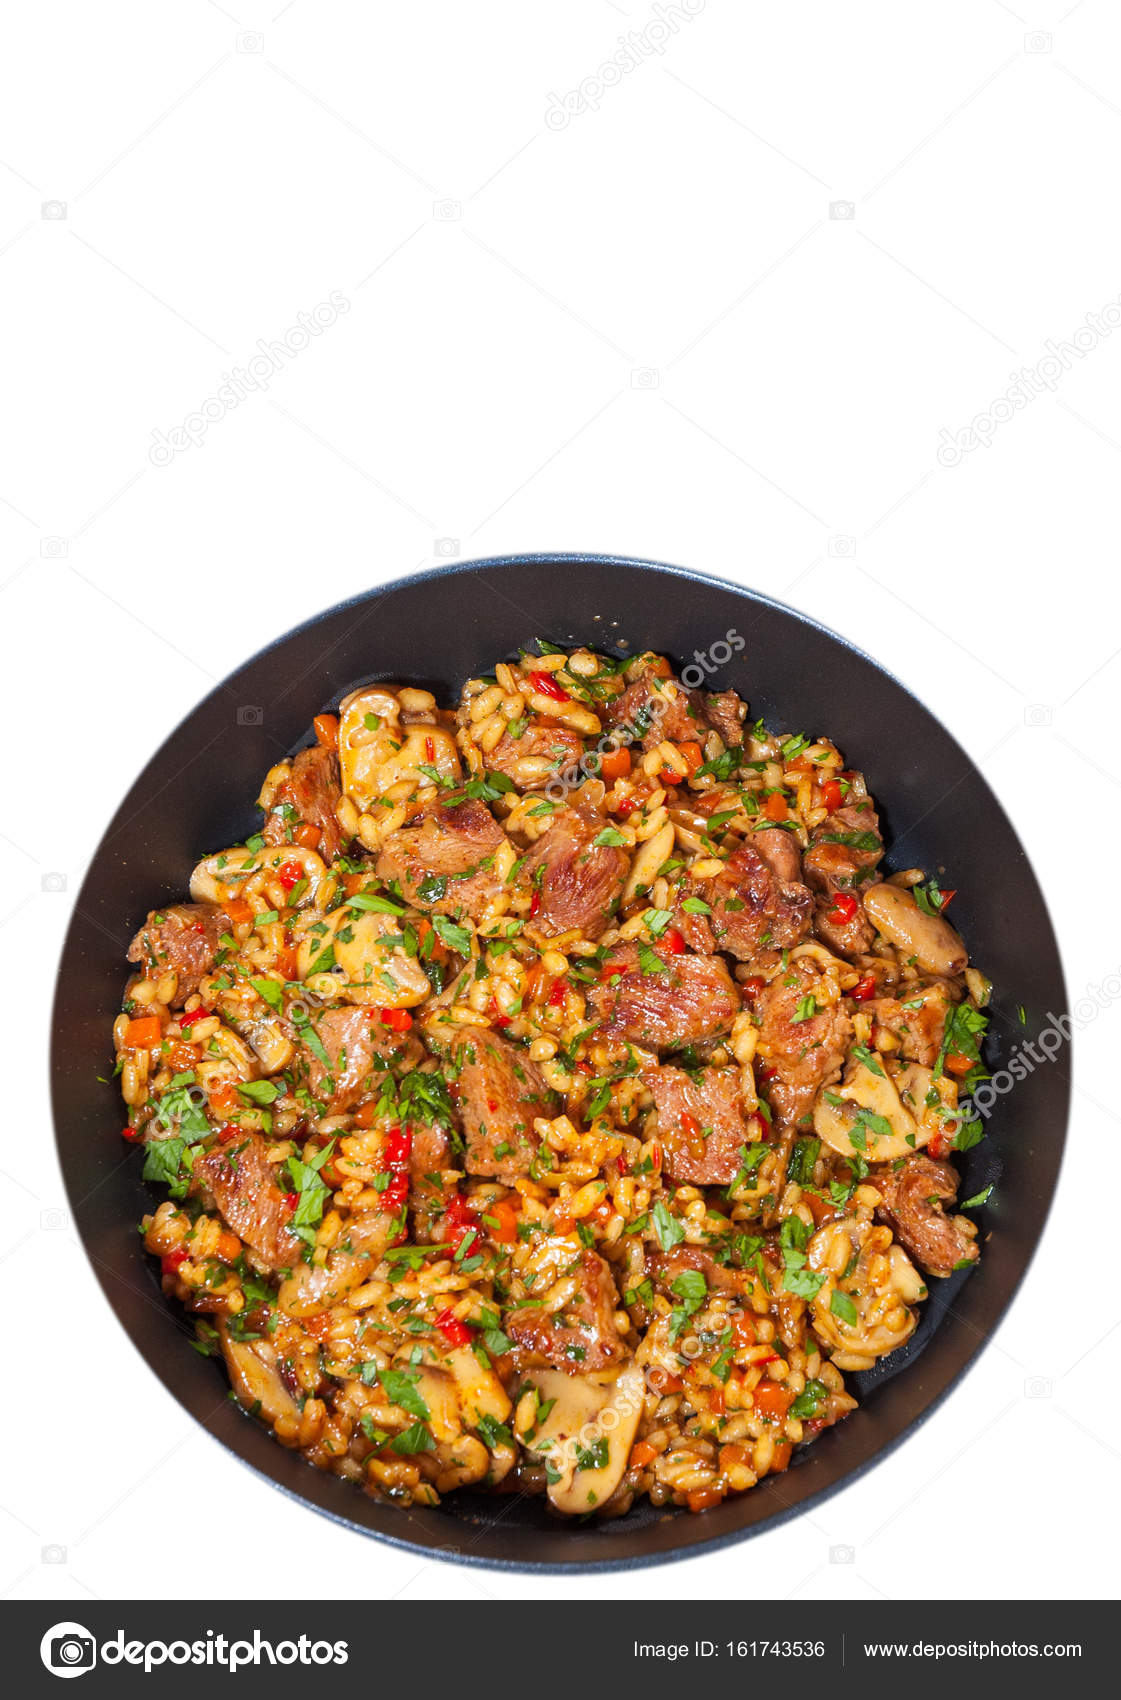 Rice With Meat Vegetables And Mushrooms In A Frying Pan